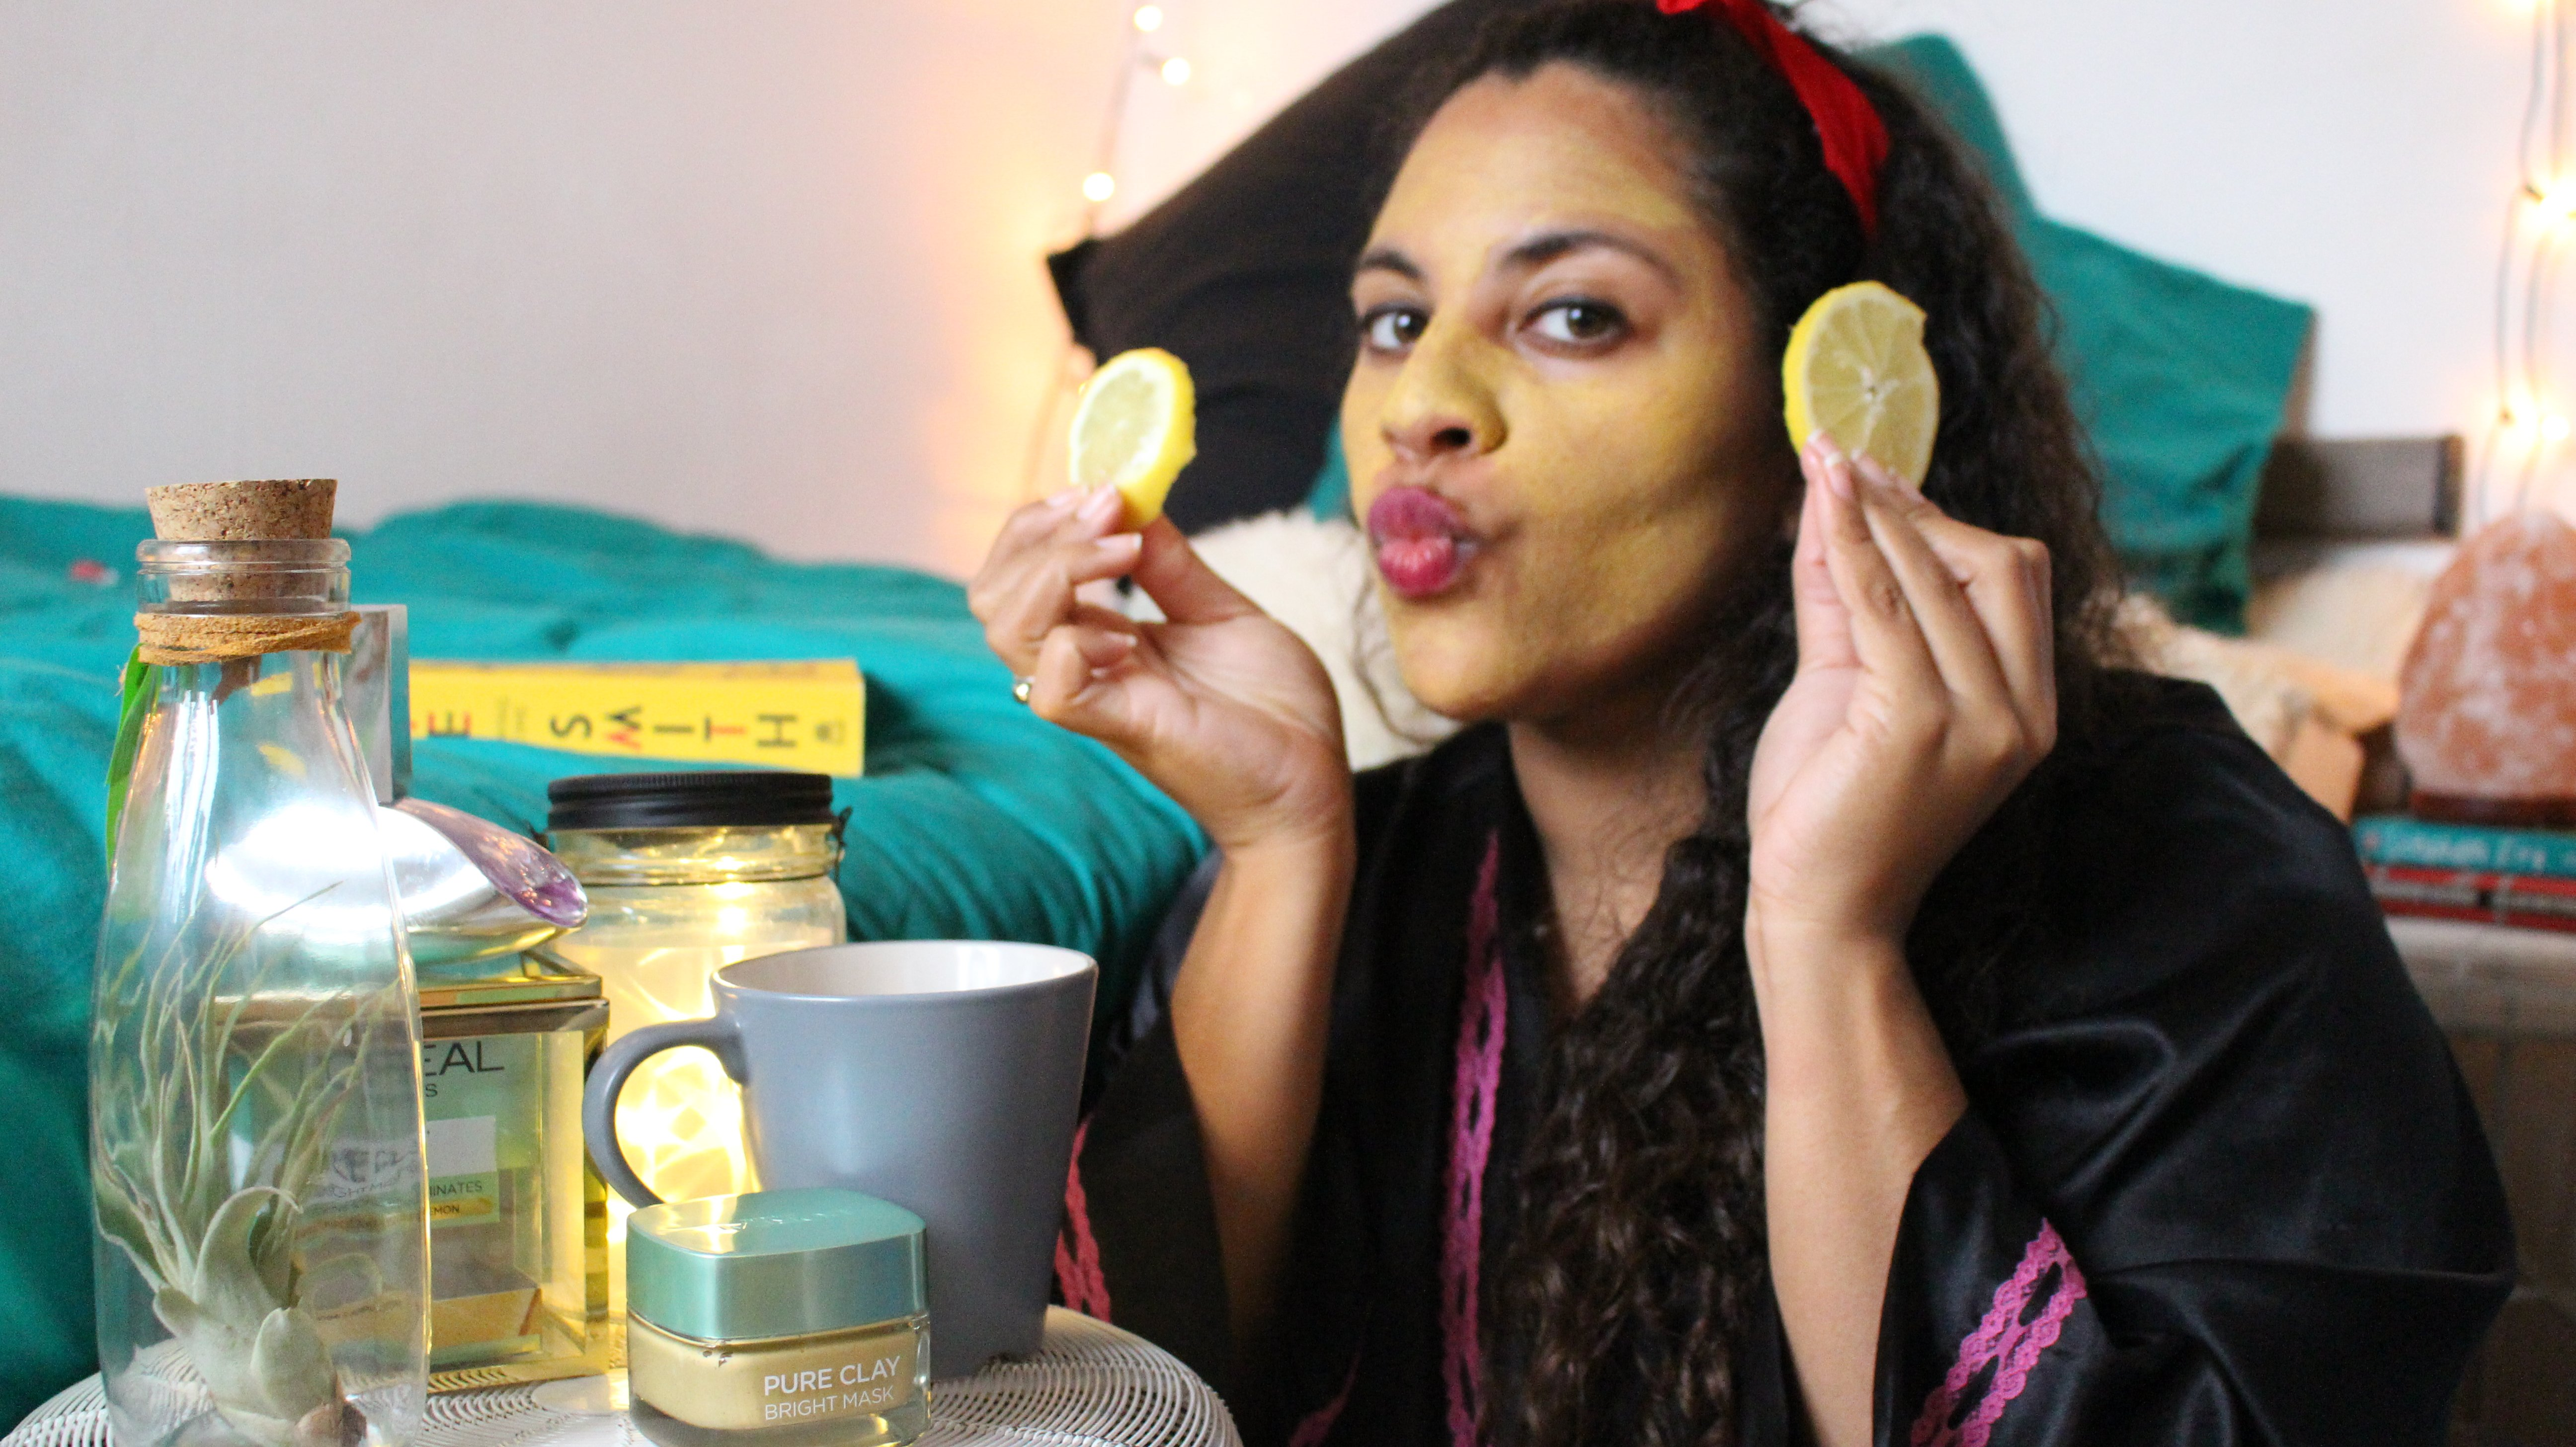 L'oreal clay mask noni may review travel lifestyle review sponsor blogger